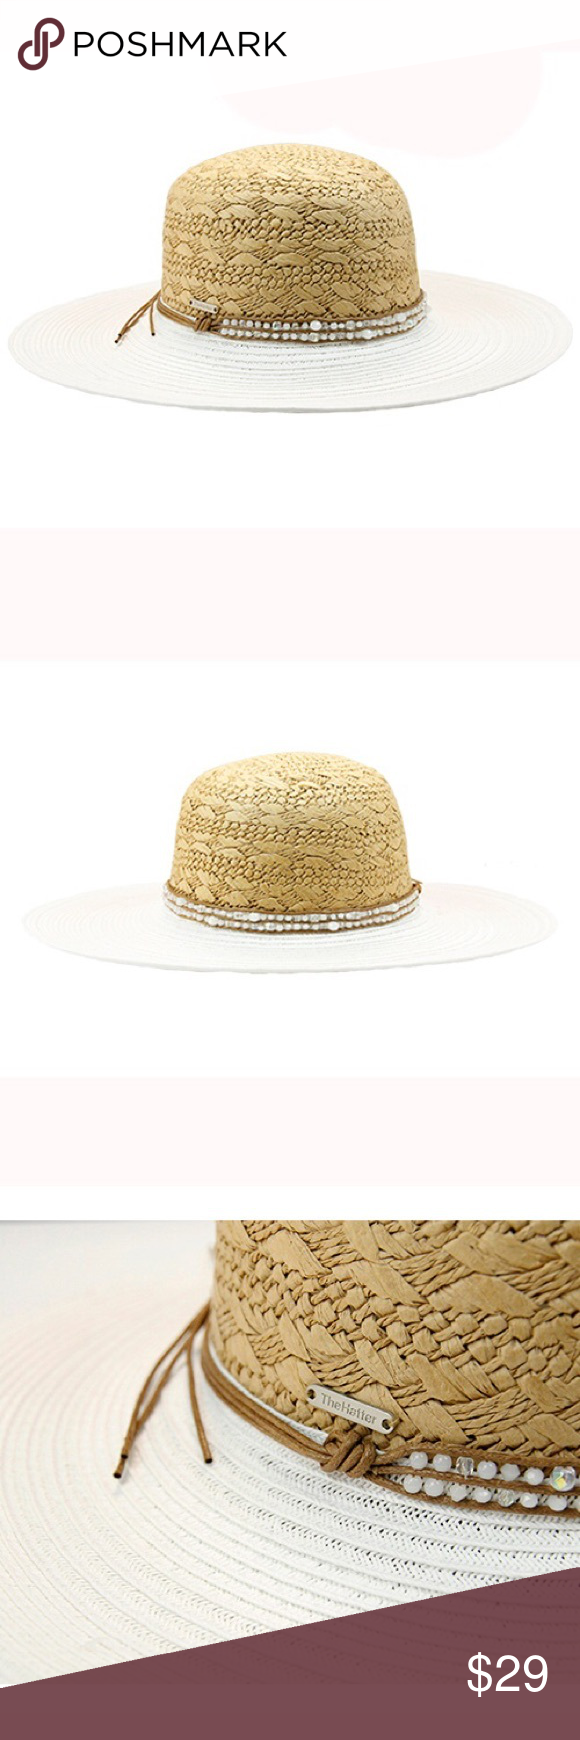 New women's floppy sunhat with rhinestone band Paper straw hat with shiny rhinestone band. 4 inch brim. One size fits most women.(head circumference is about 57cm) The Hatter Company Accessories Hats